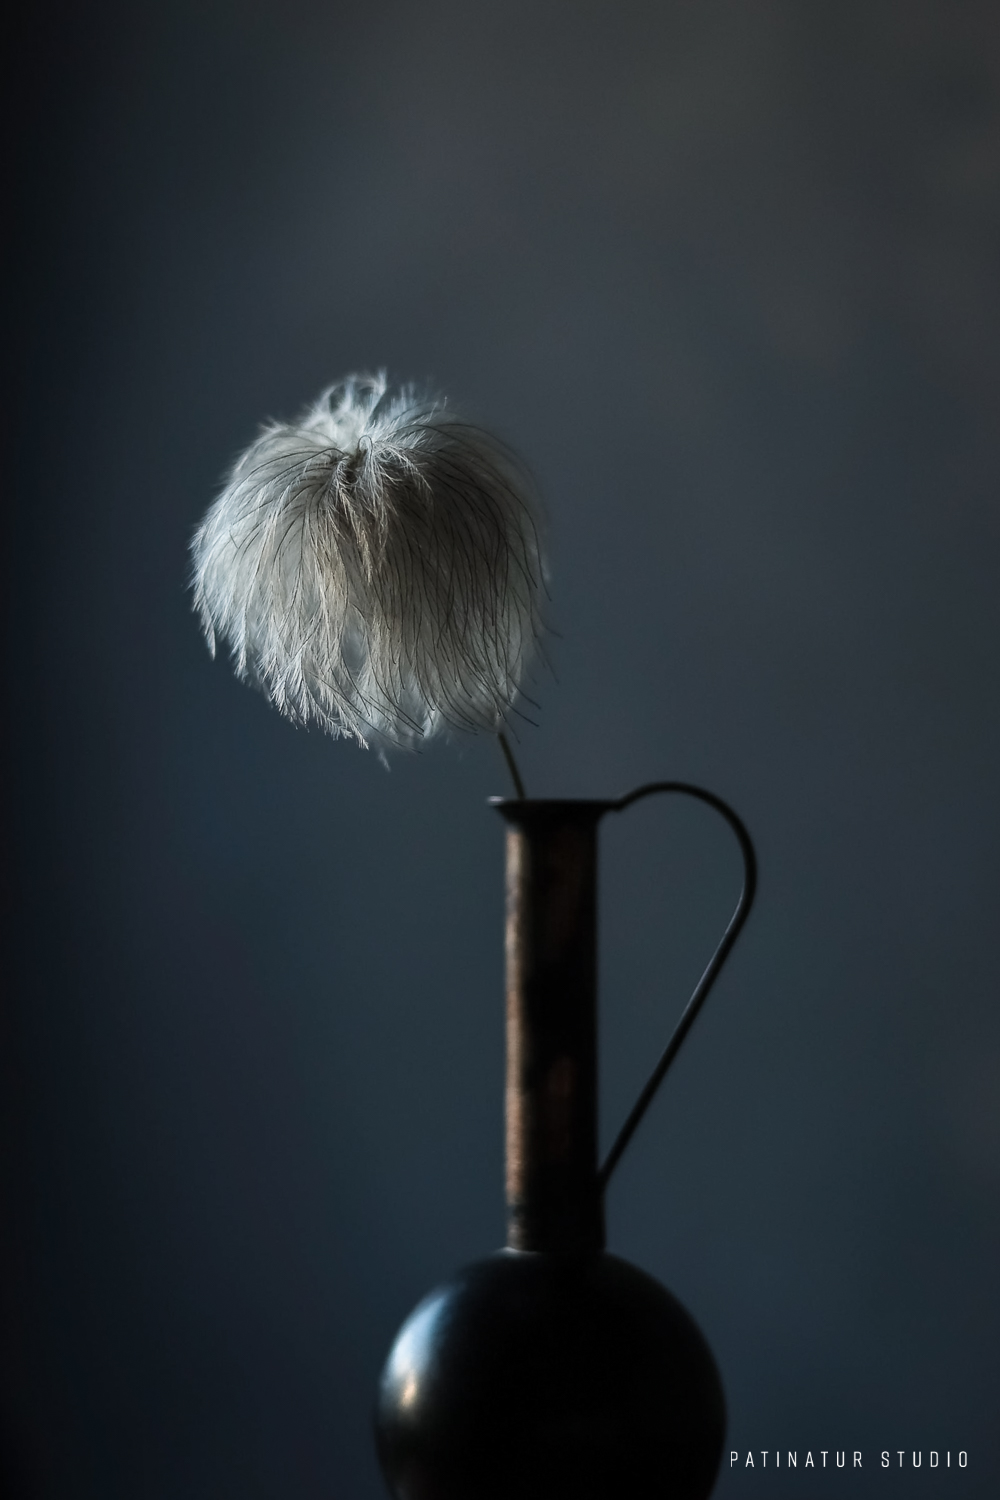 Dark and mooddy still life photo with clematis seedhead in small black vase